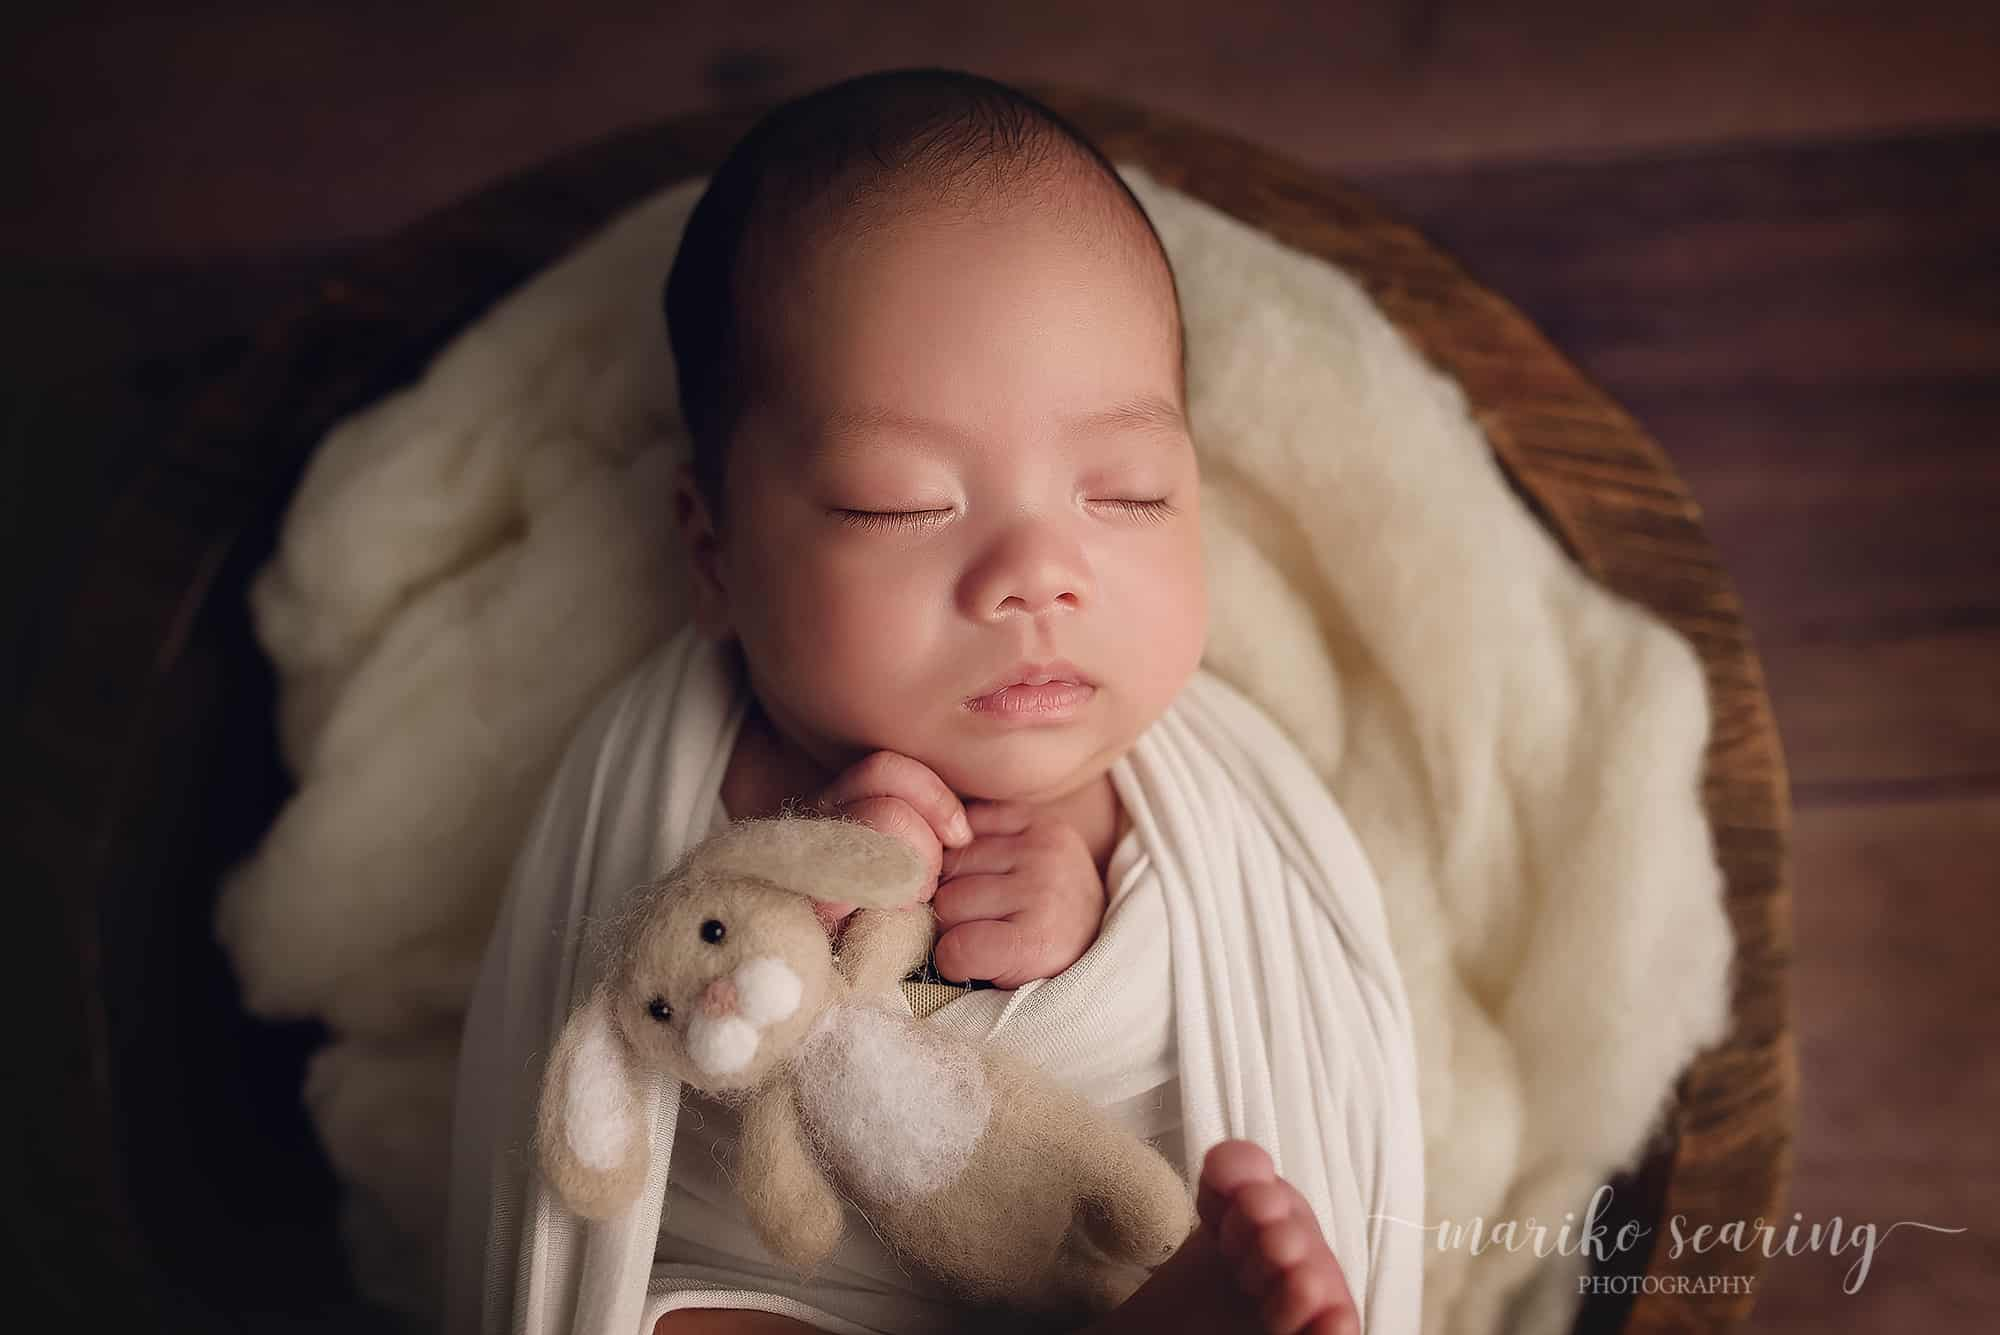 03052018 classic posed baton rouge newborn photographer white wrapped sleeping baby in bowl with felt rabbit close up